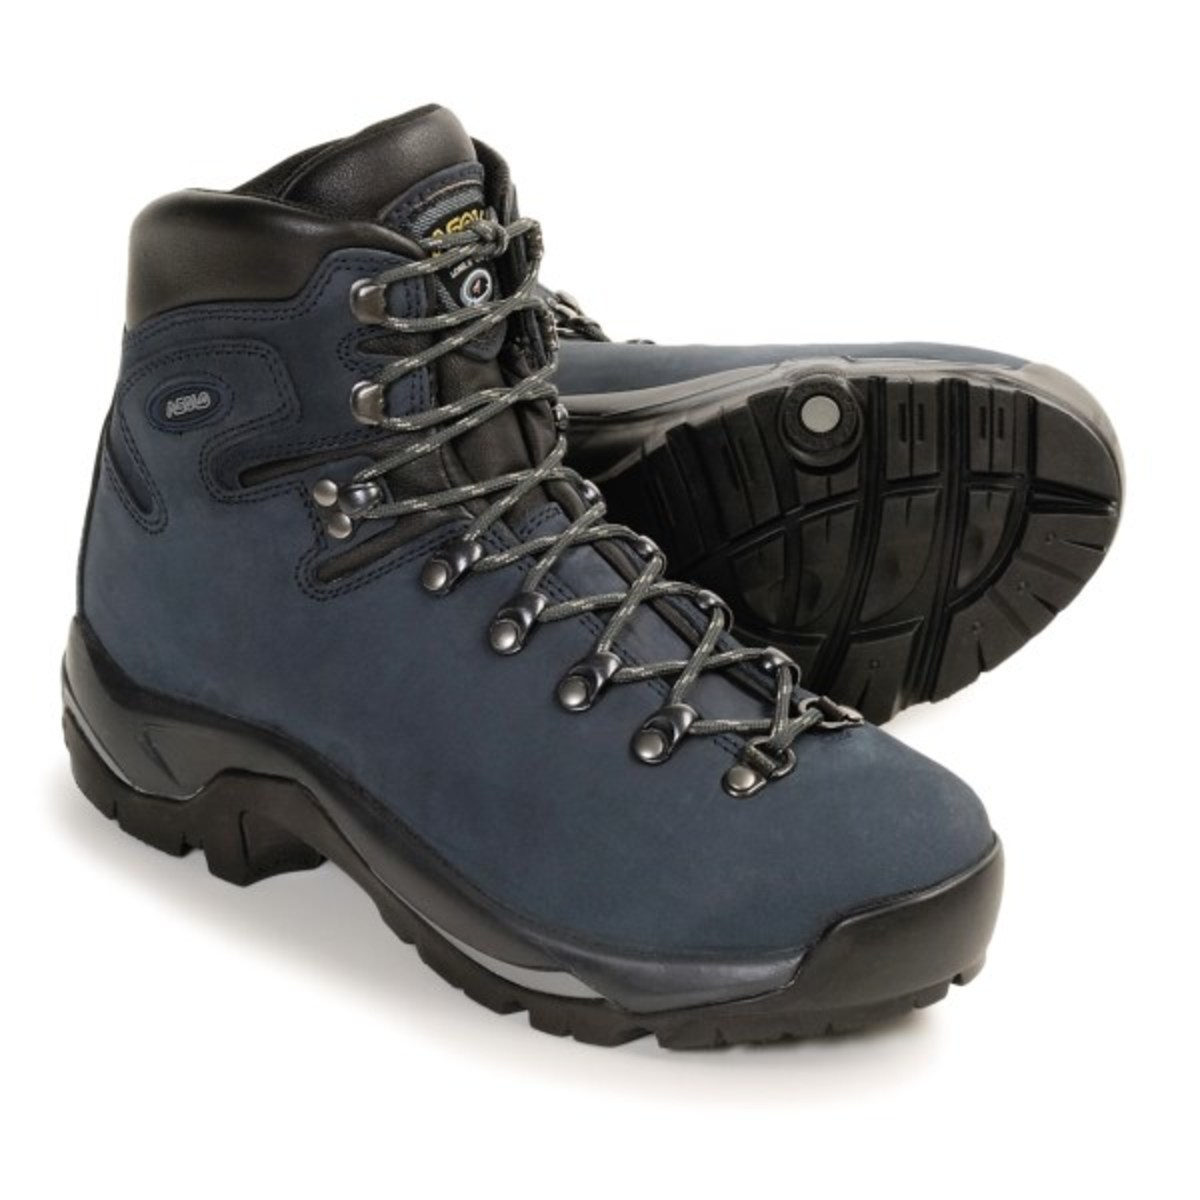 Hiking Boots For Heel Pain Number One The Asolo 535 Boot